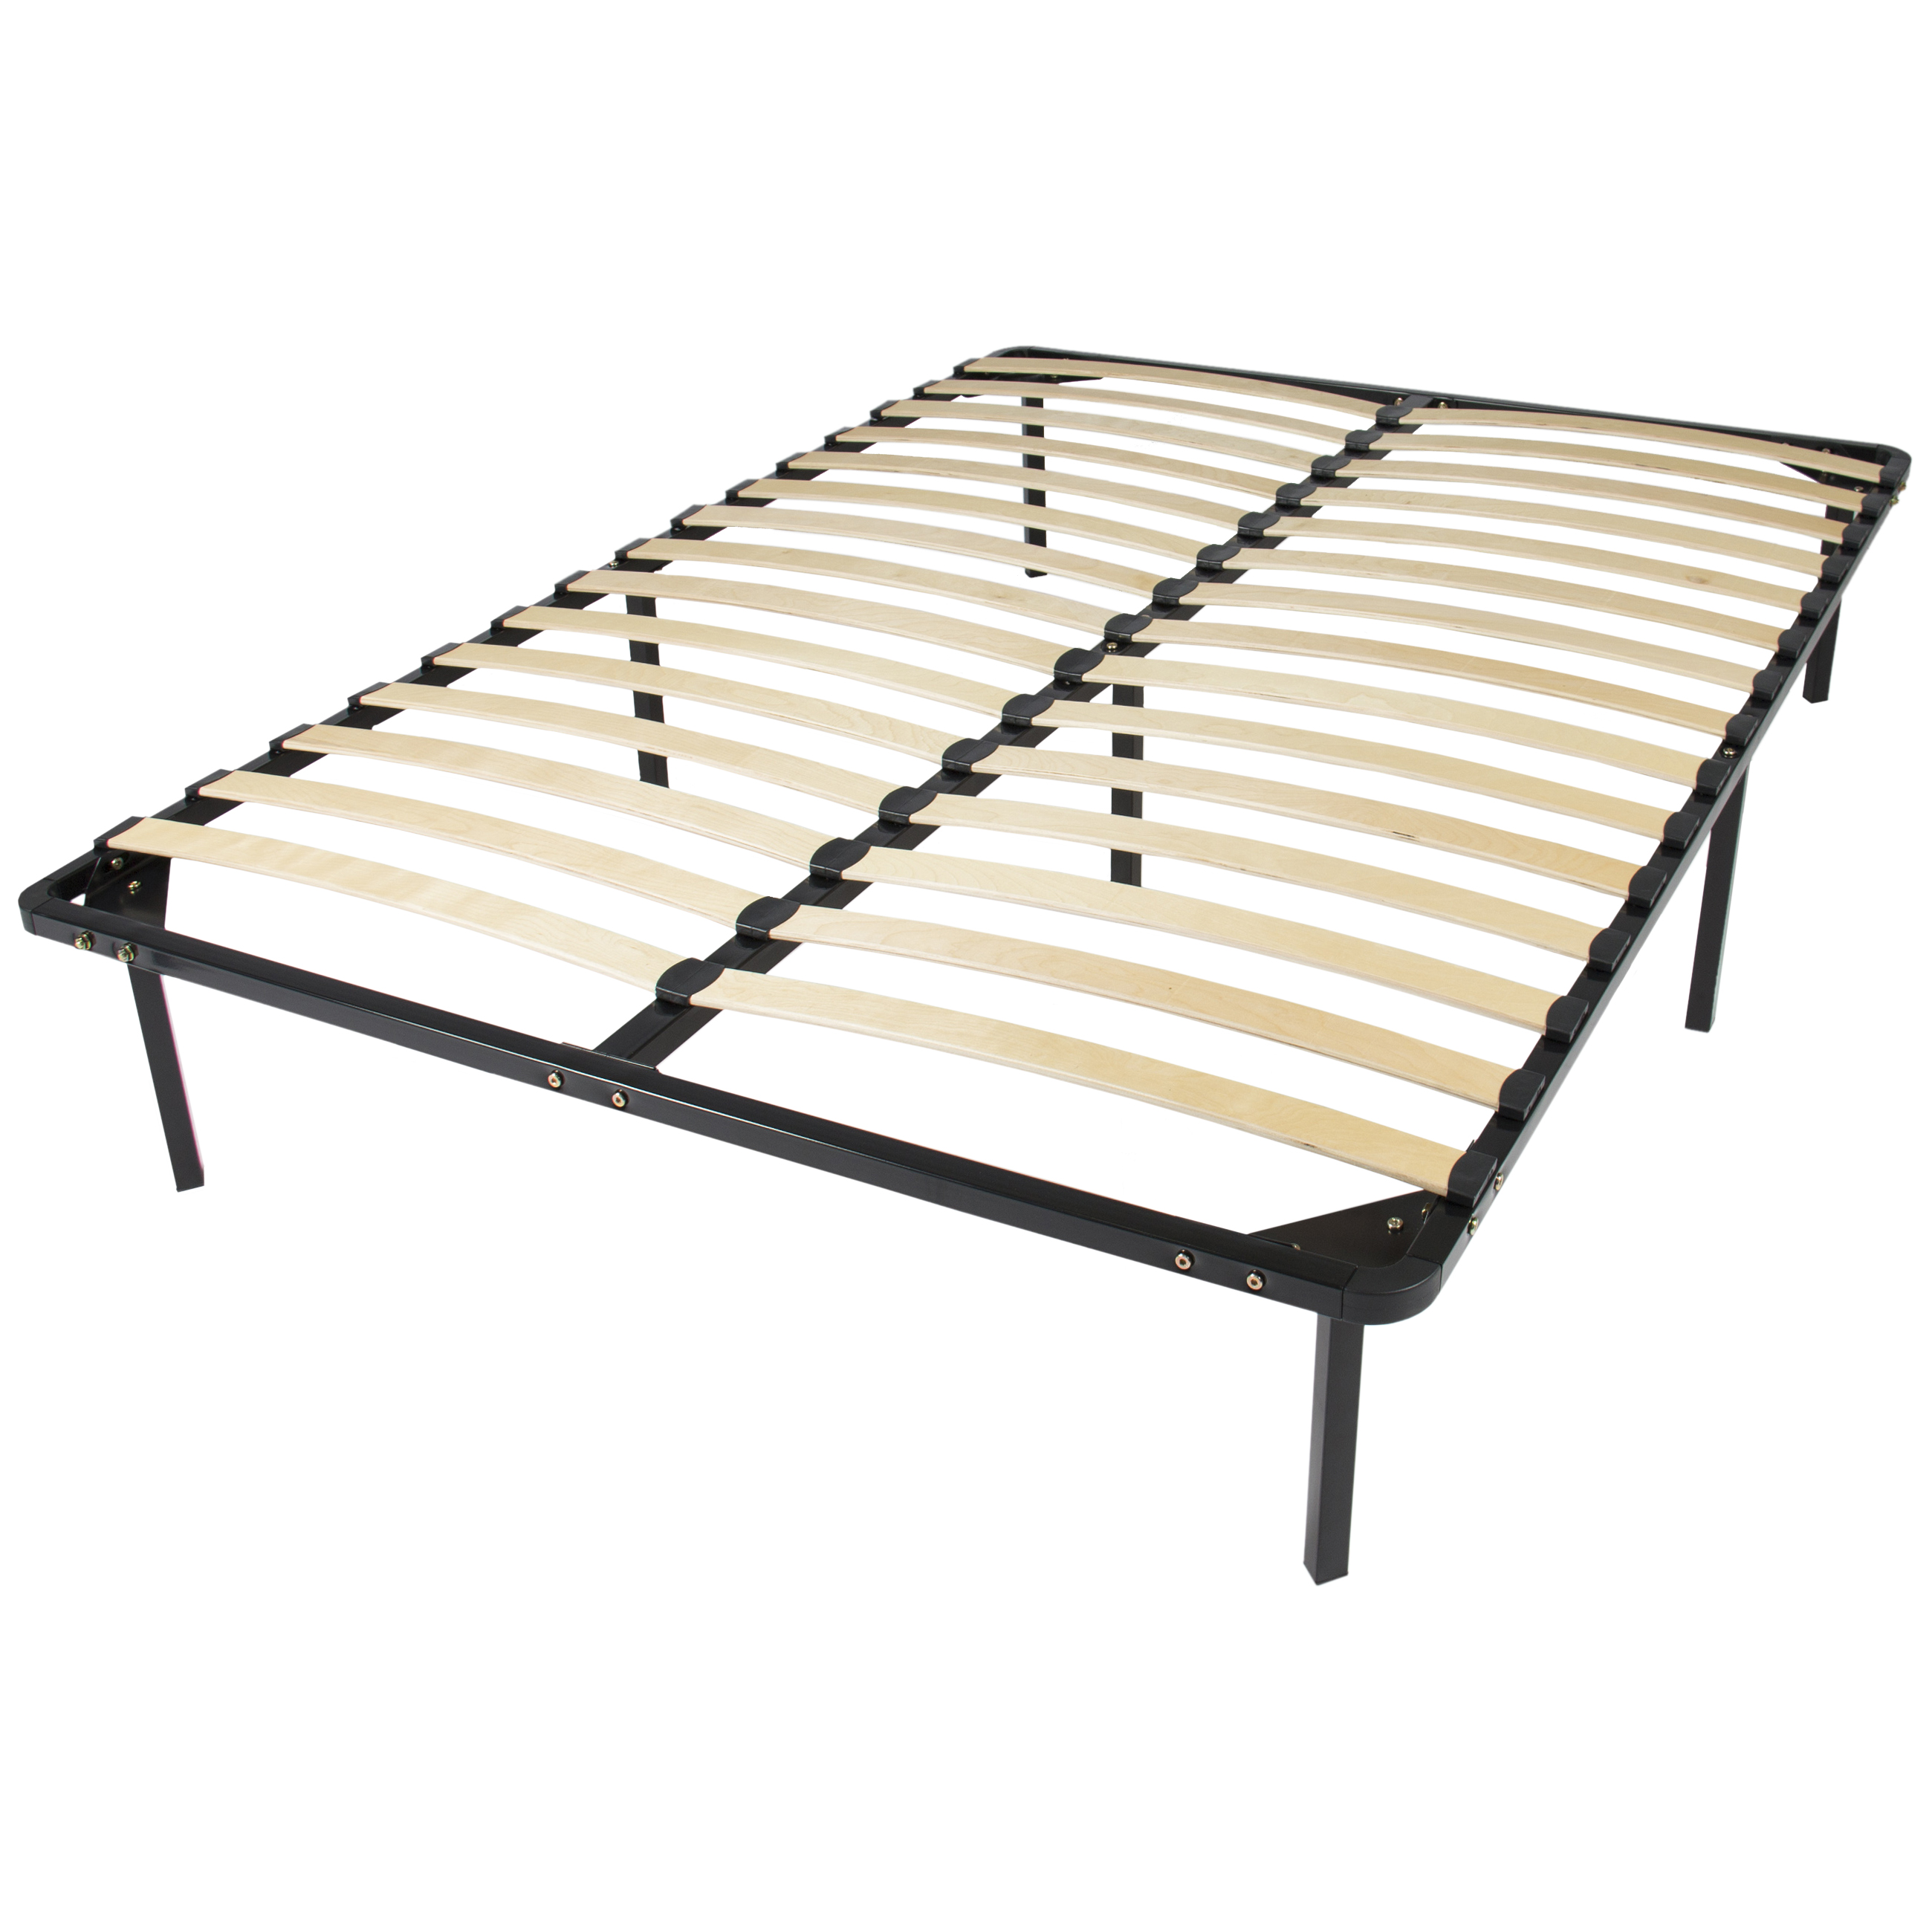 Best Choice Products Wooden Slat Metal Bed Frame Wood Platform Bedroom Mattress Foundation Queen